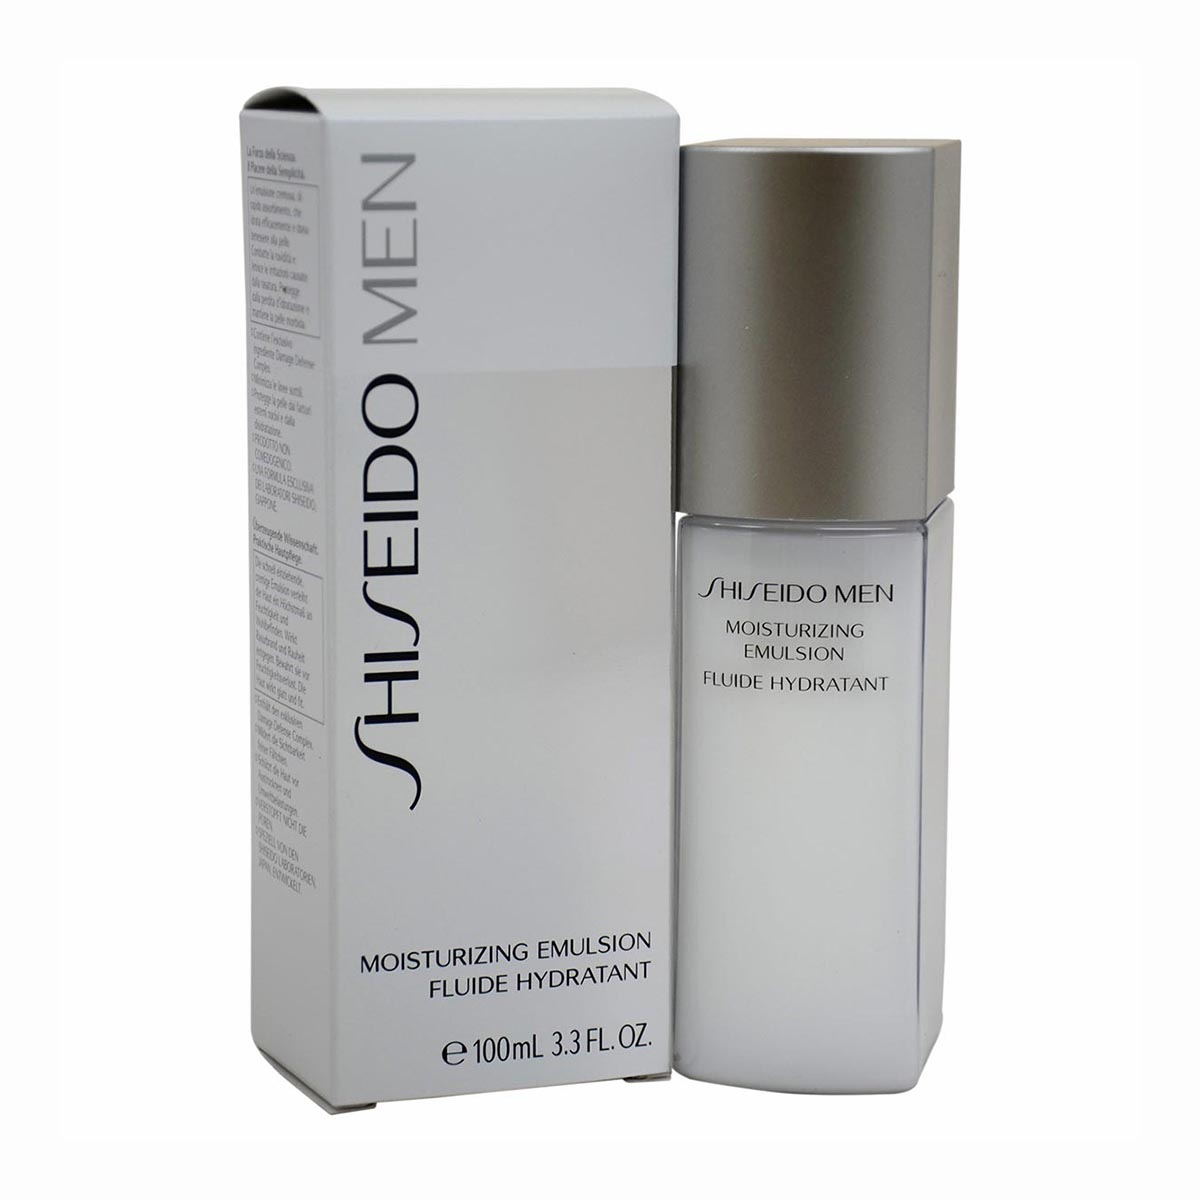 Shiseido men emulsion hidratante 100ml